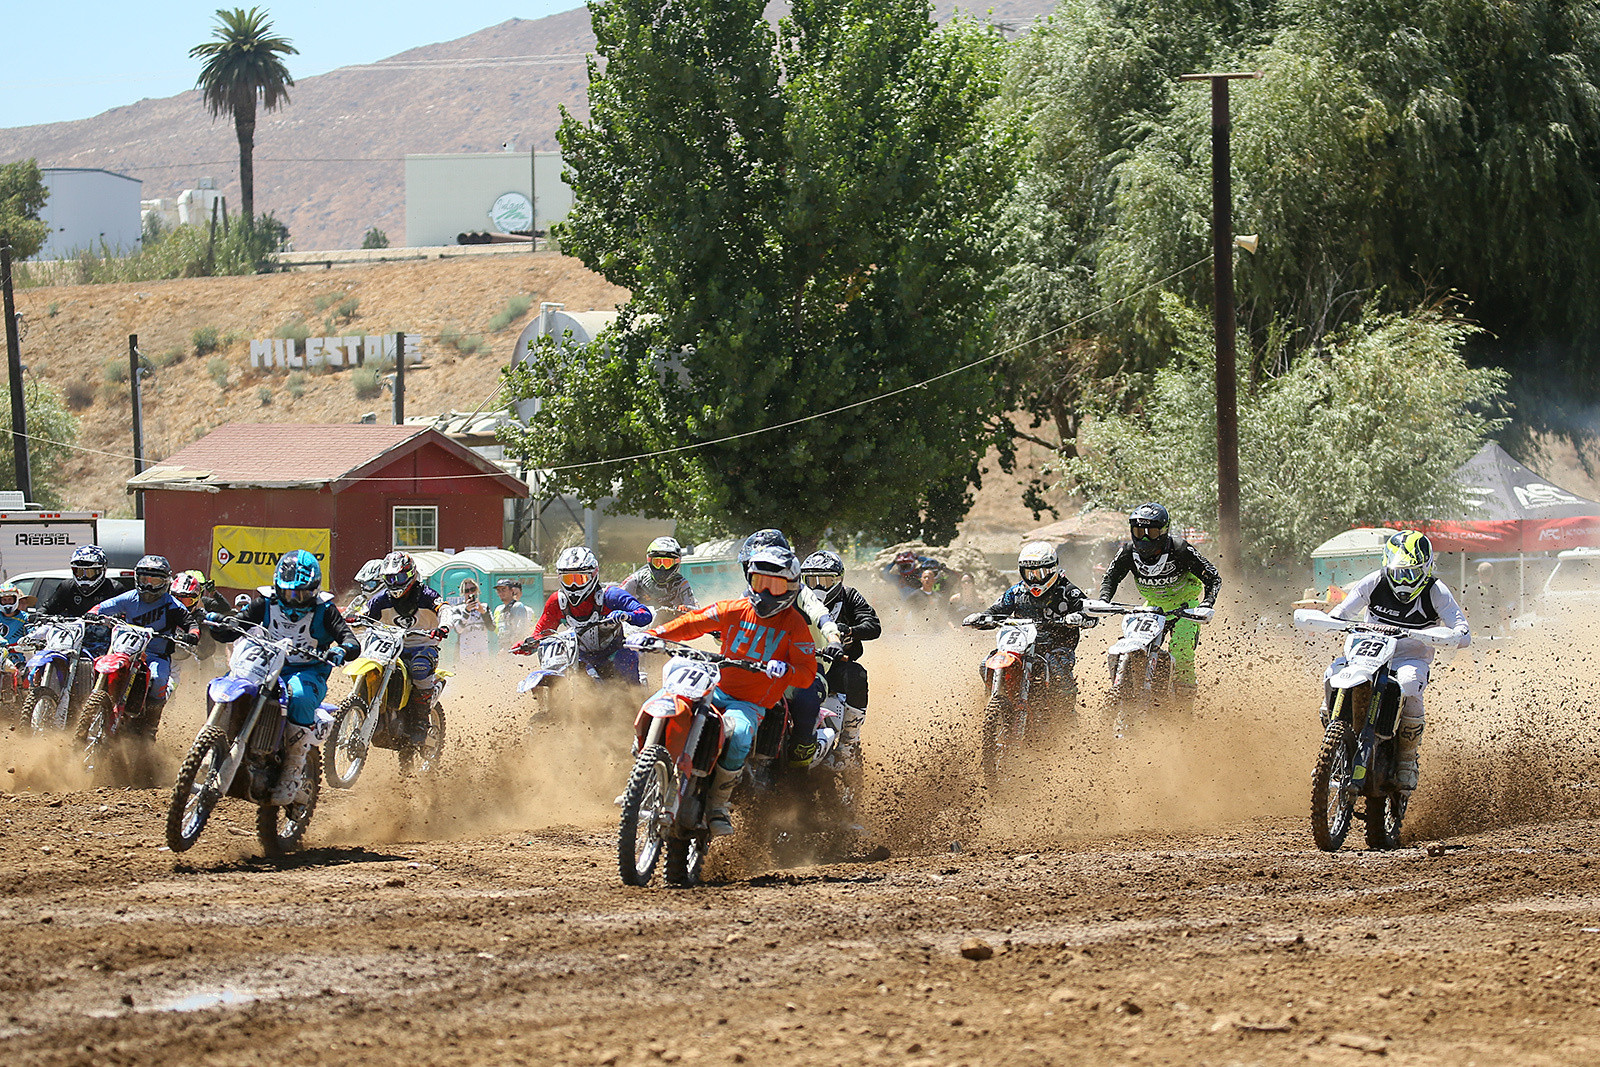 On the industry side, Jeff Northrop grabbed the holeshot in this moto, and was being chased by Jon-Erik Burleson (23), and Jimmy Lewis (24), among others.